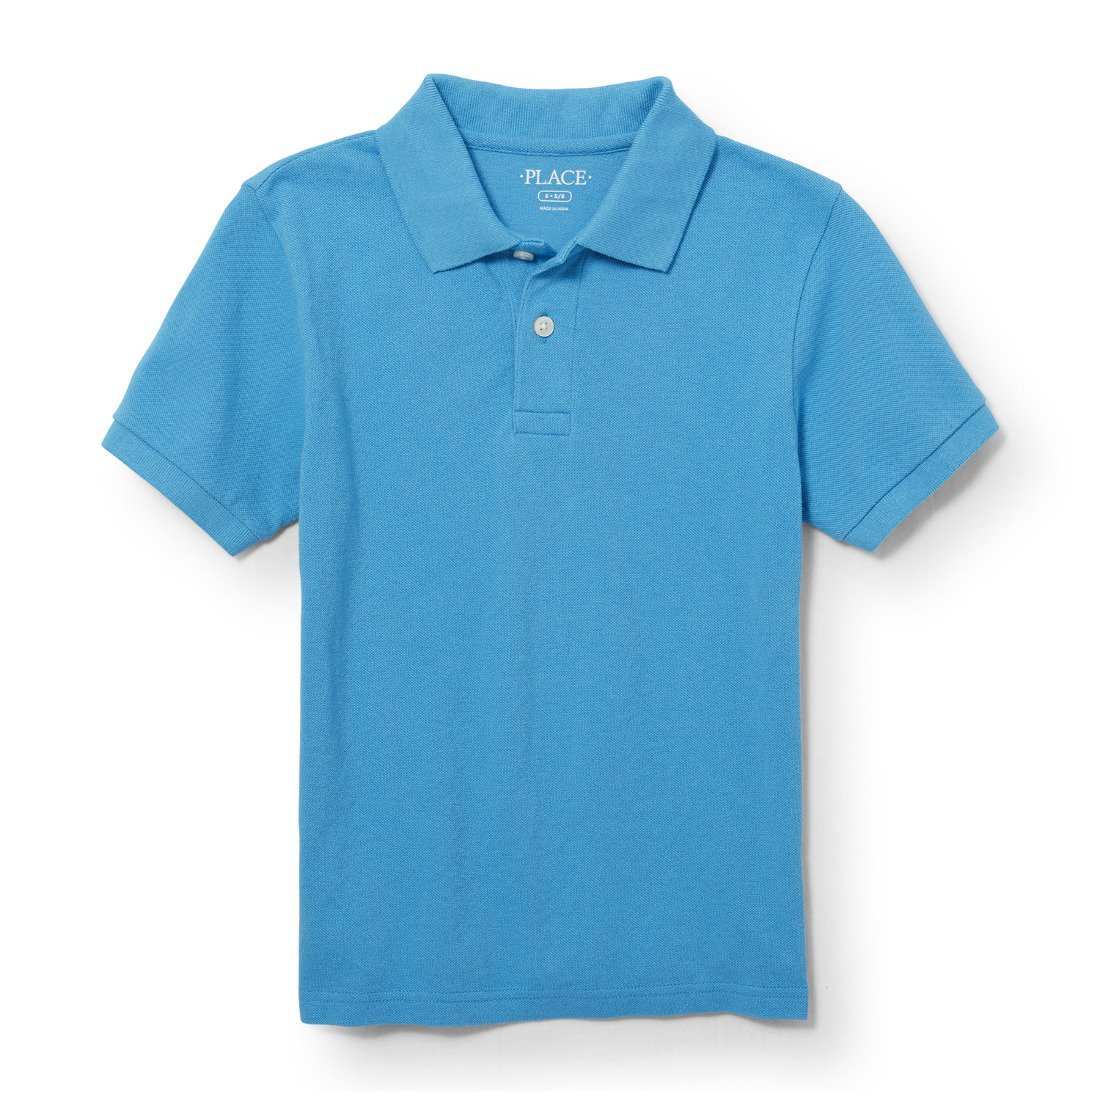 The Children's Place Boys Big Boys Short Sleeve Polo The Children' s Place